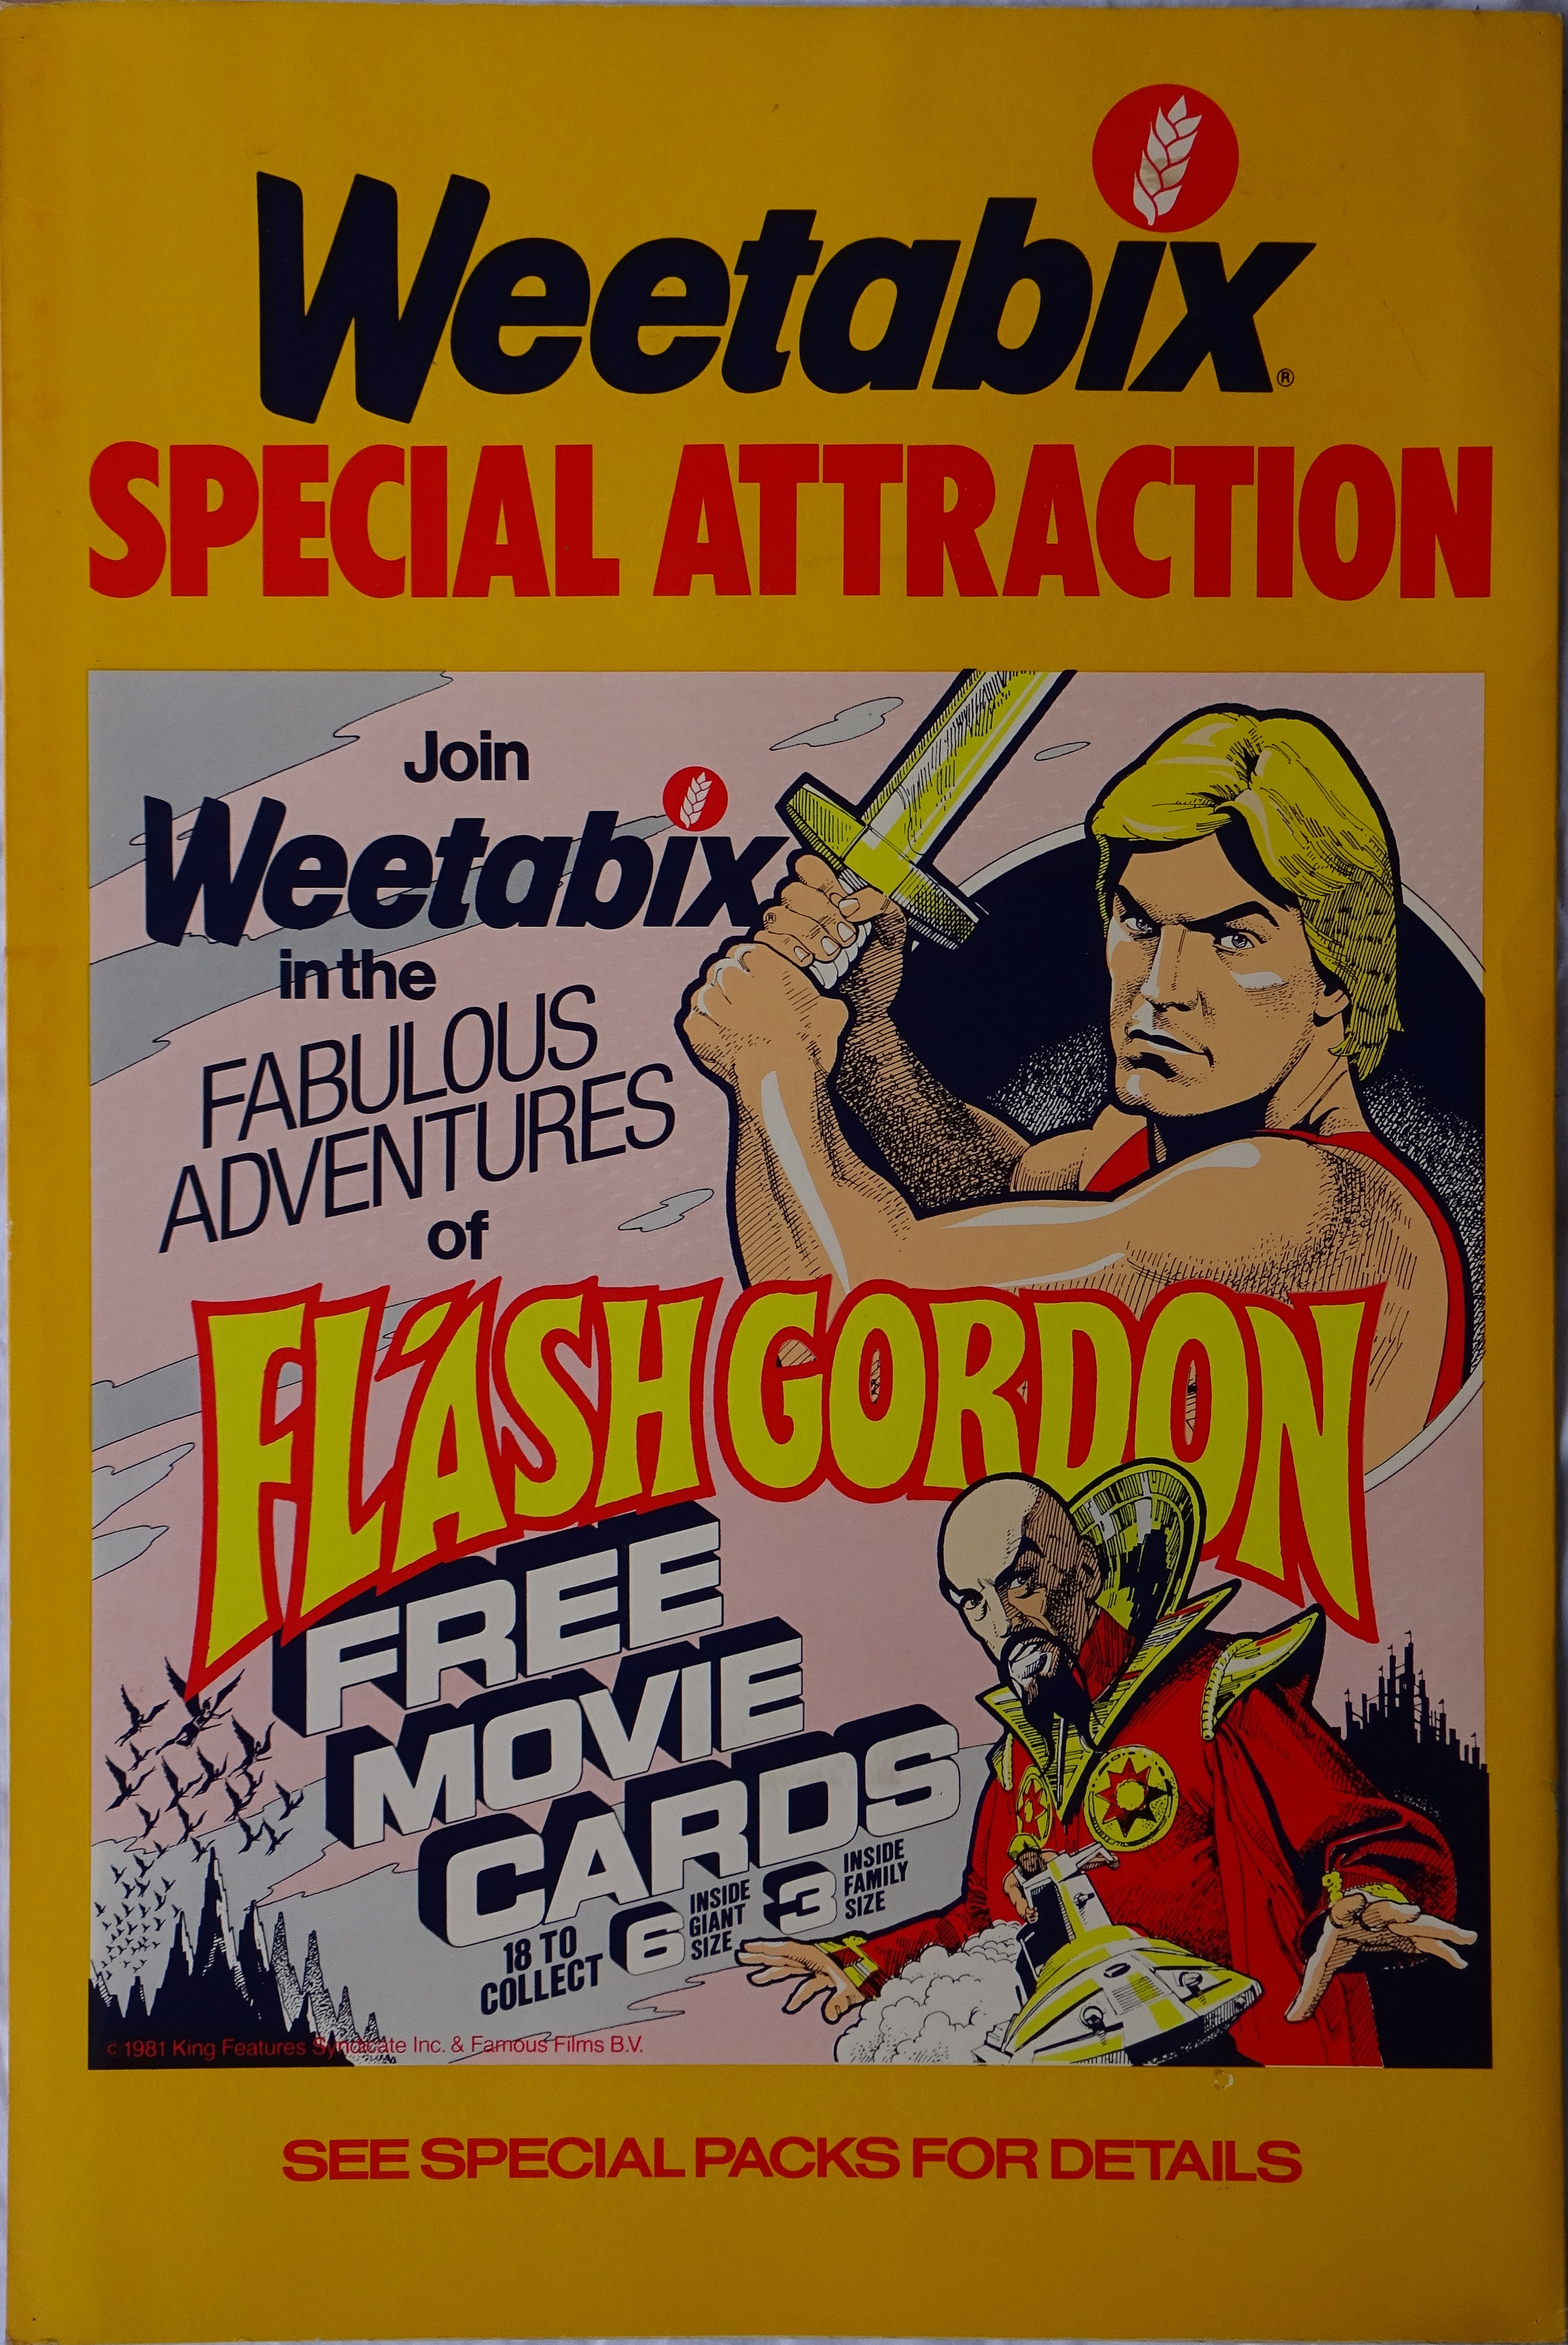 1981 Weetabix Flash Gordon Shop Poster